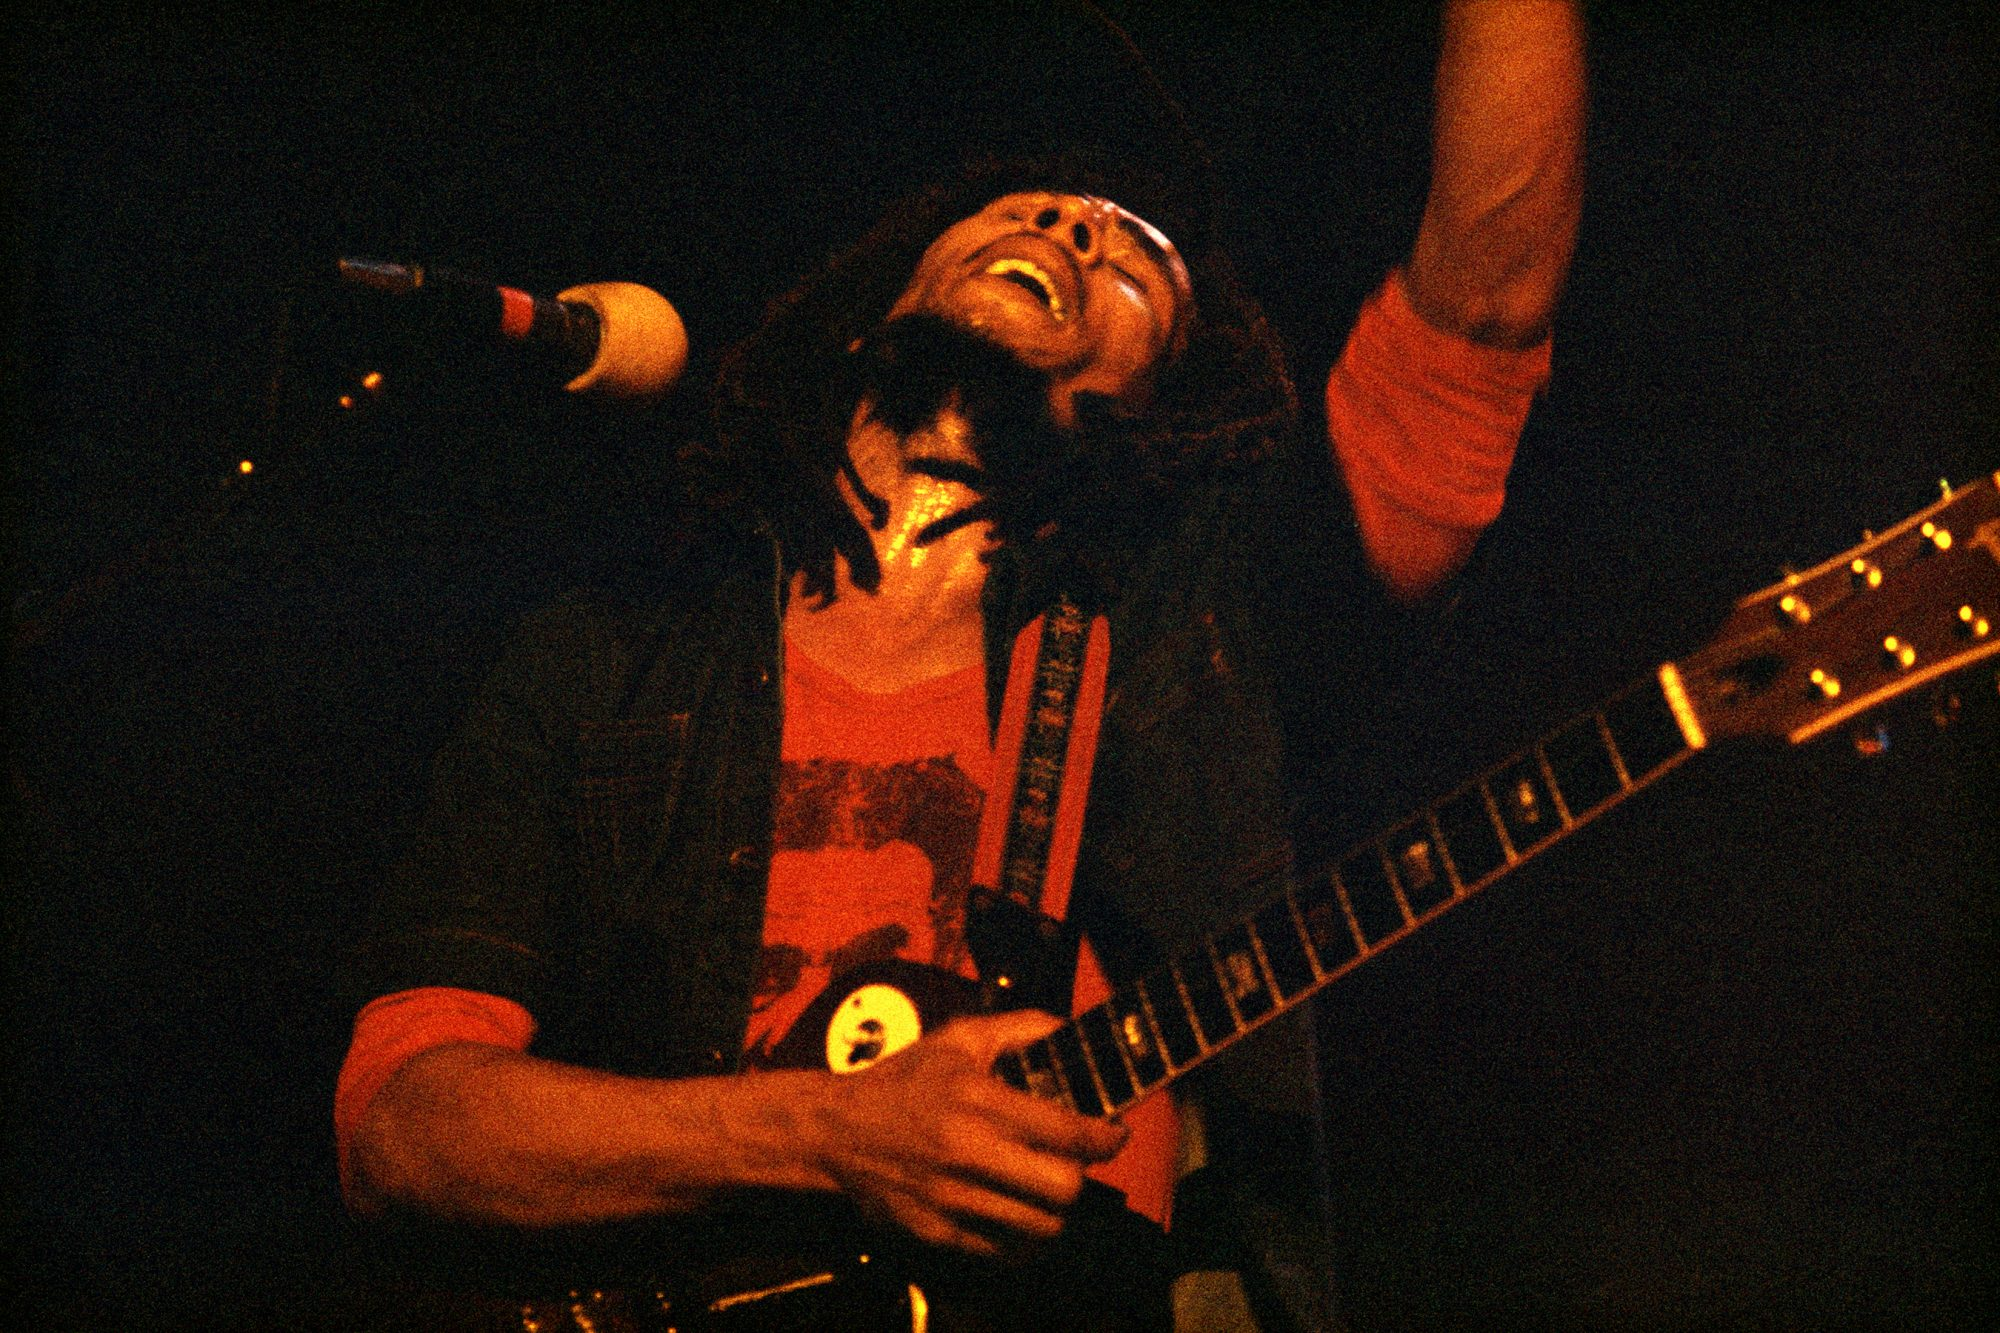 Bob Marley at Hammersmith Odeon in London in 1976